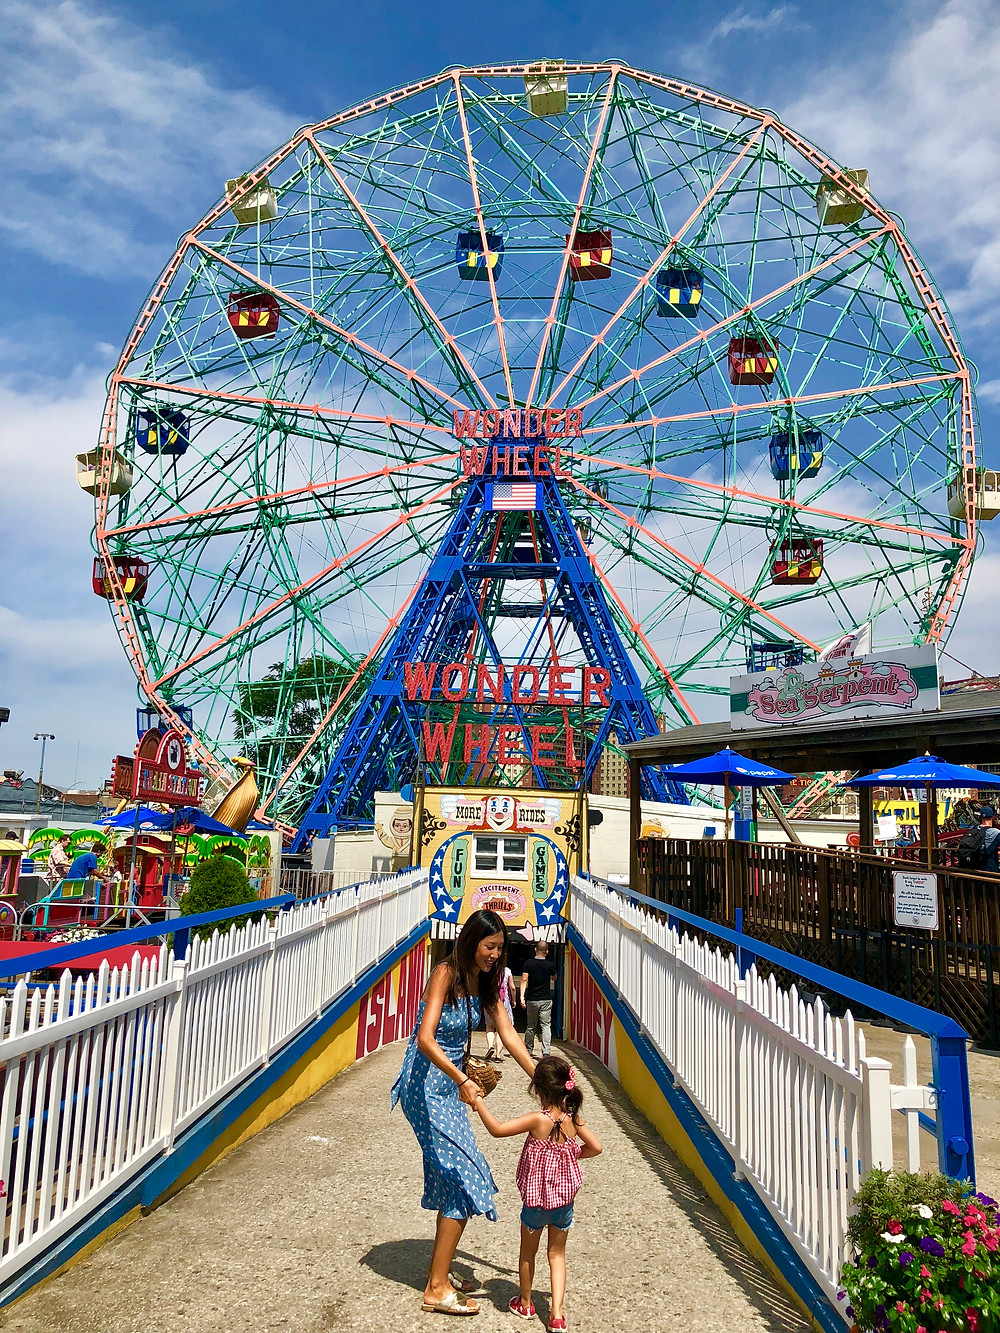 Coney Island boardwalk, Wonder Wheel, Deno's Wonder Wheel, Deno's Coney Island, Summer bucket list, New York City with kids, nyc bucket list, nyc with kids, things to do this summer with kids, Curious G and Me, NYC summer, beyond the beach, Camp Mommy, NYC family, NYC Summer Entertainment Guide for Kids, Summer fun NYC, NYC parents, NYC kids, NYC Mom Blogger, Manhattan Mom